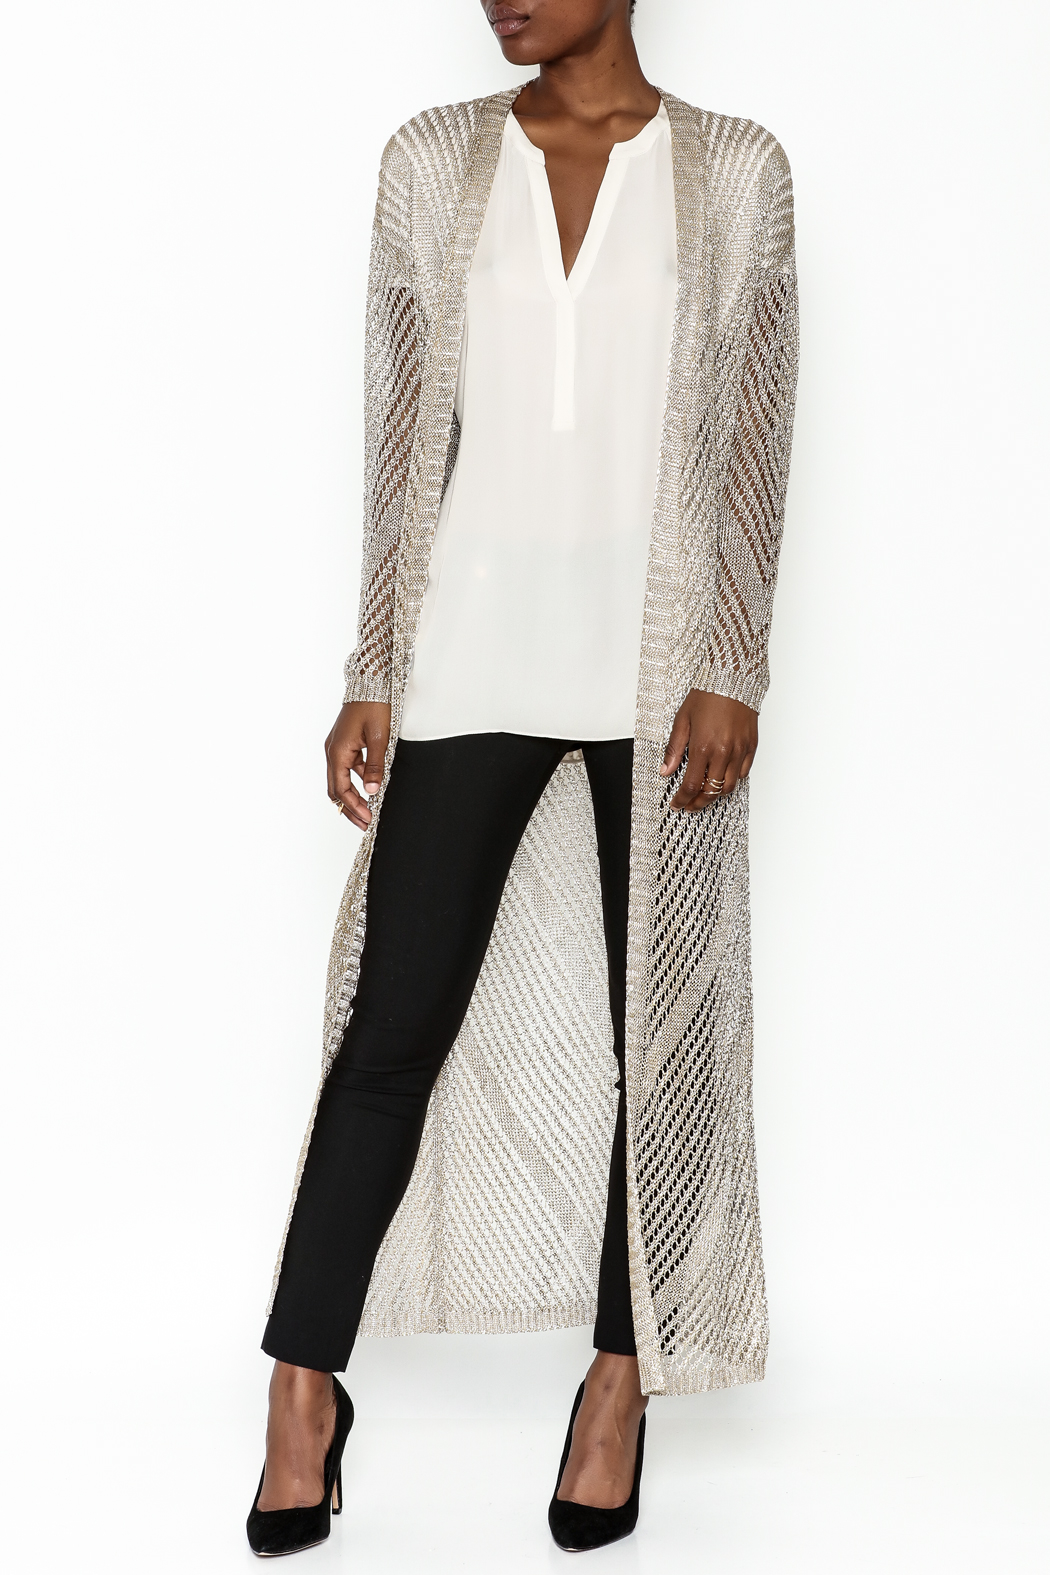 Wow Couture Metallic Threads Cardigan - Front Cropped Image